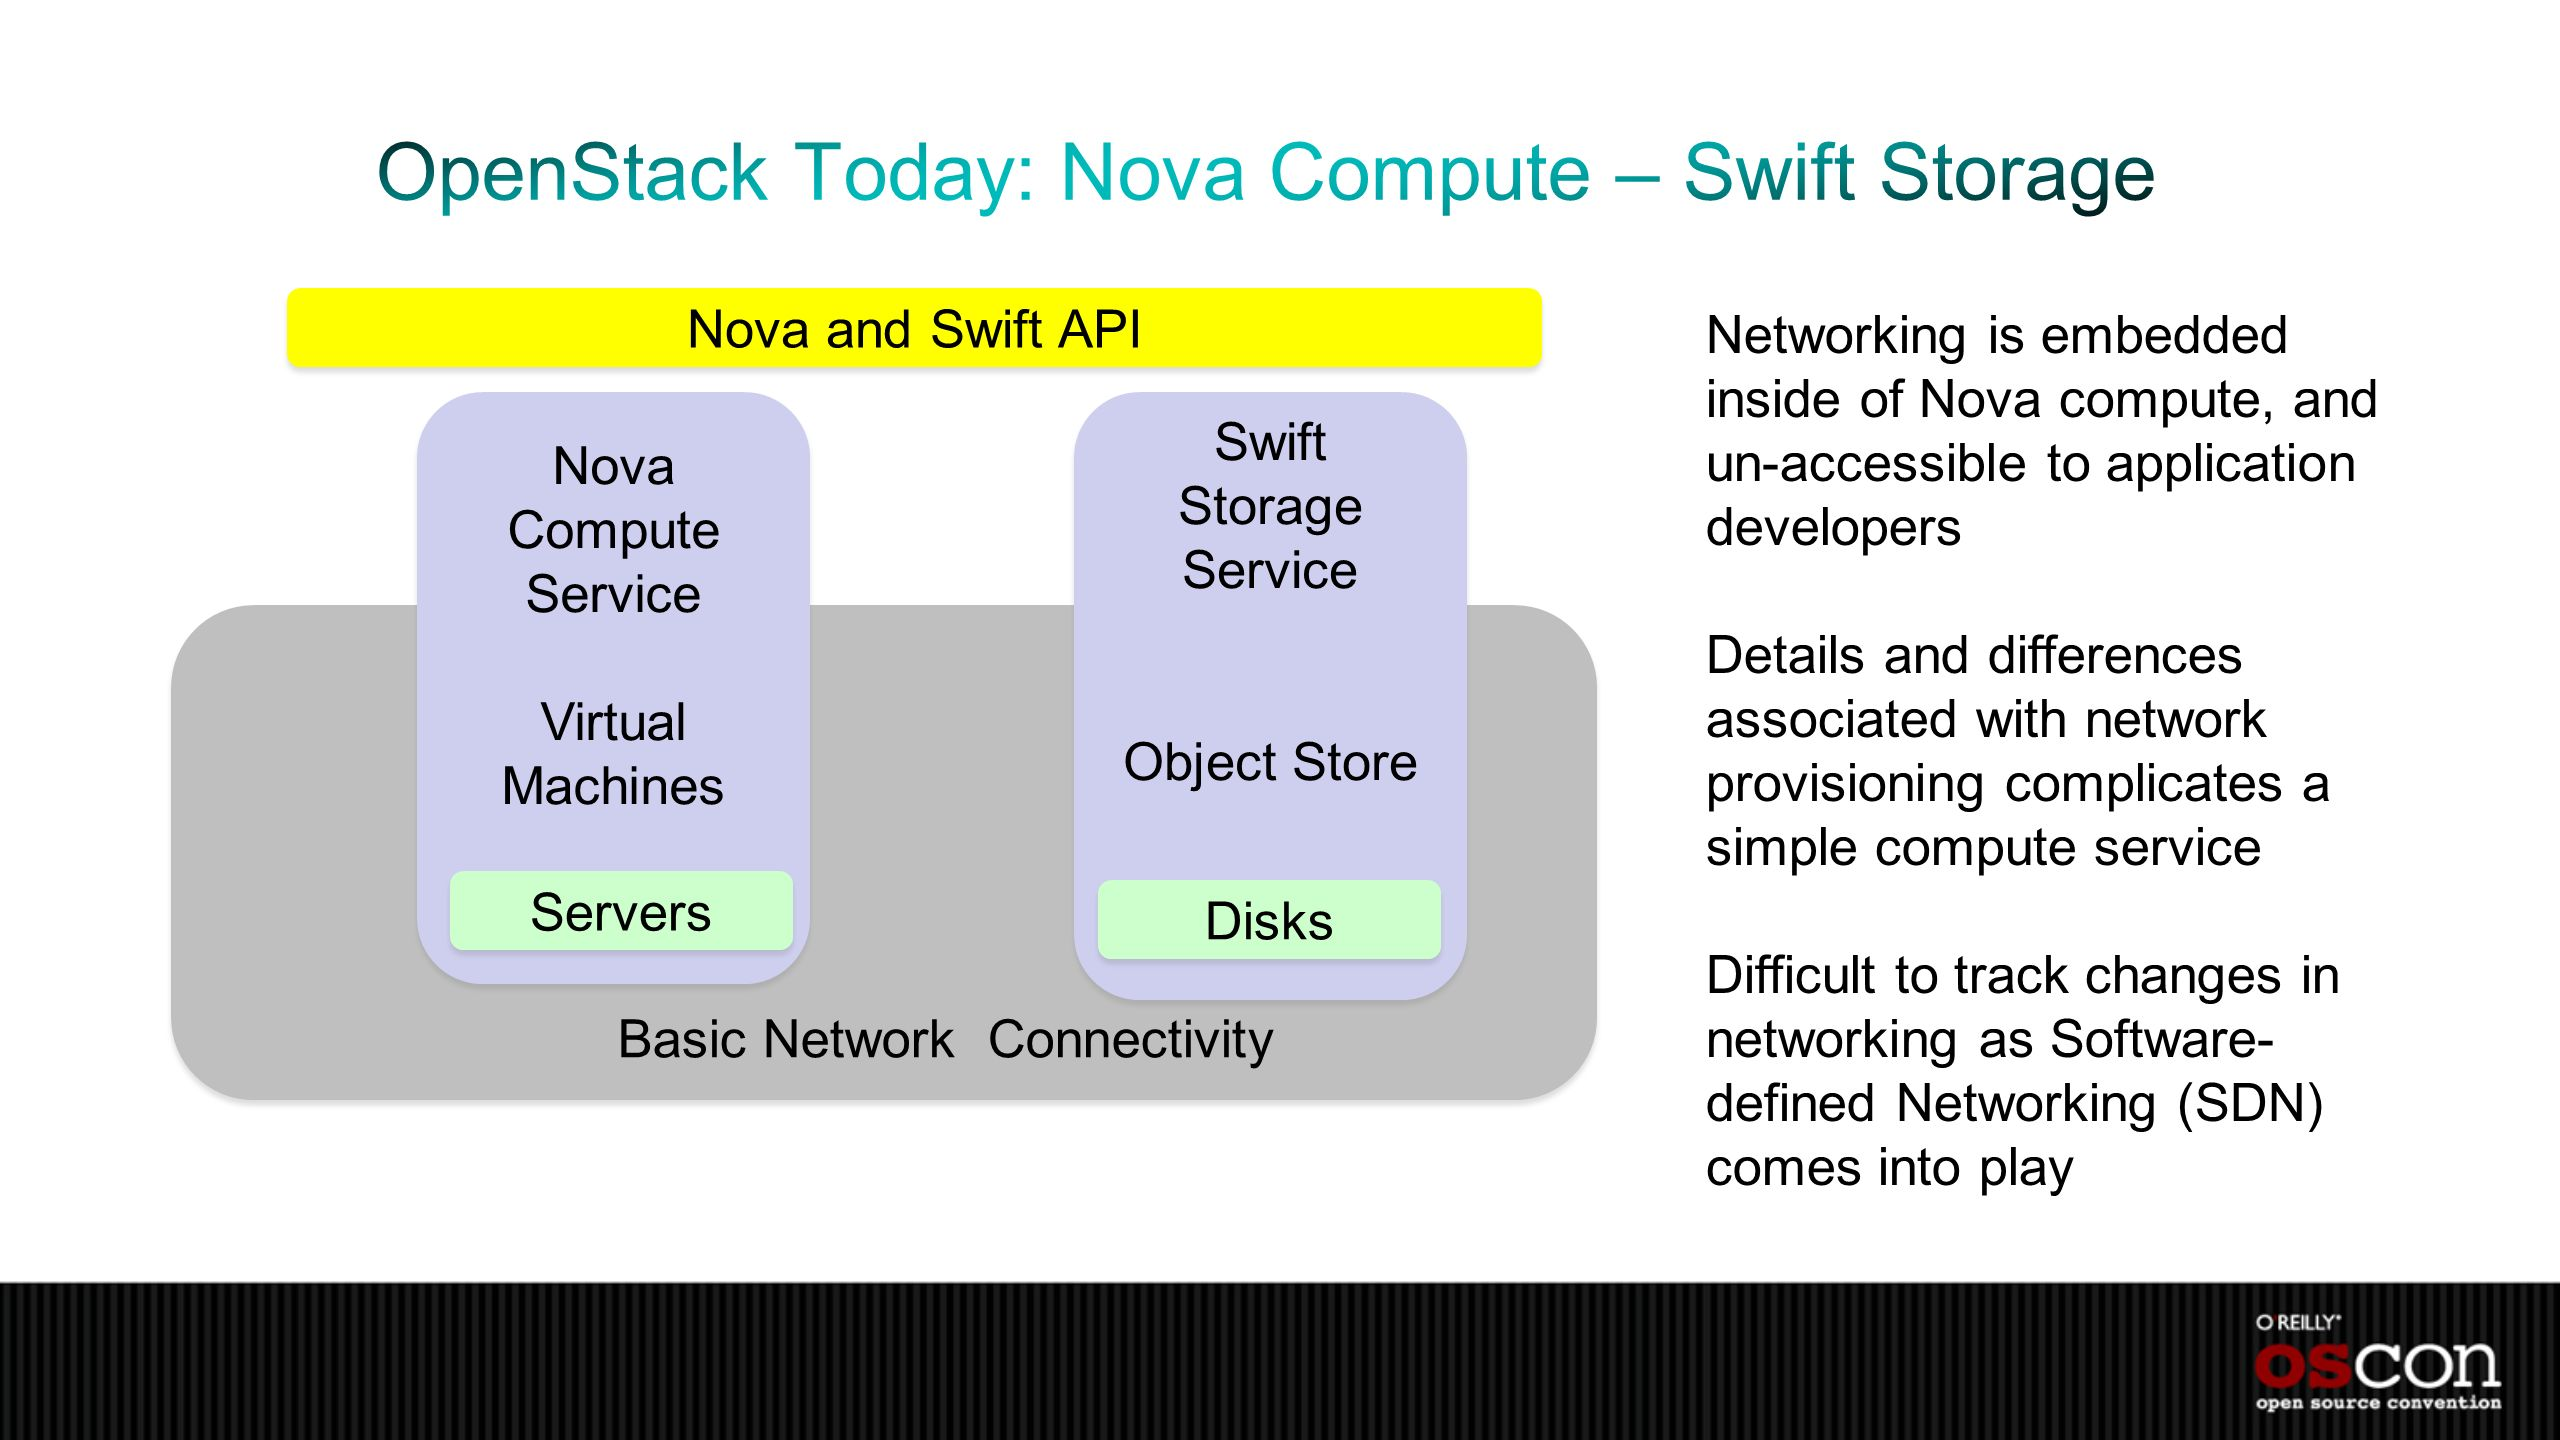 OpenStack Today: Nova Compute – Swift Storage